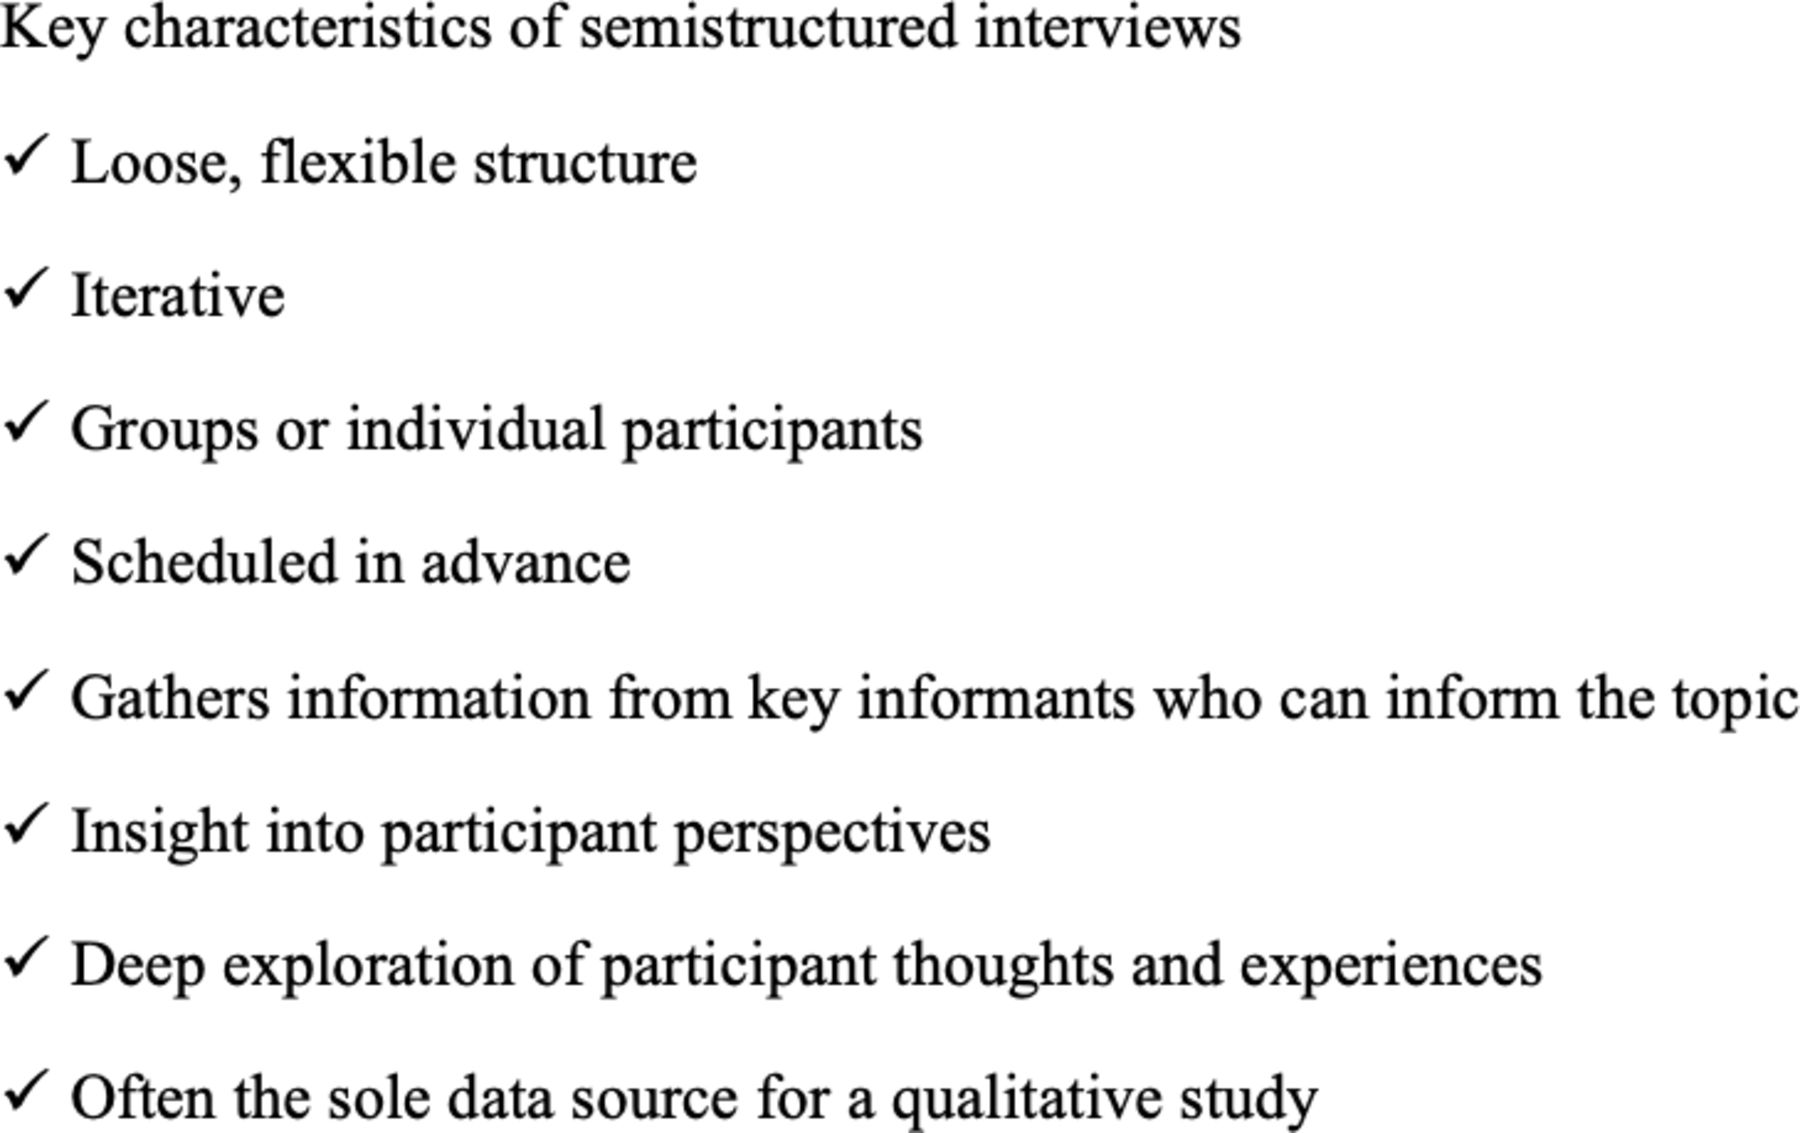 Semistructured interviewing in primary care research: a balance of